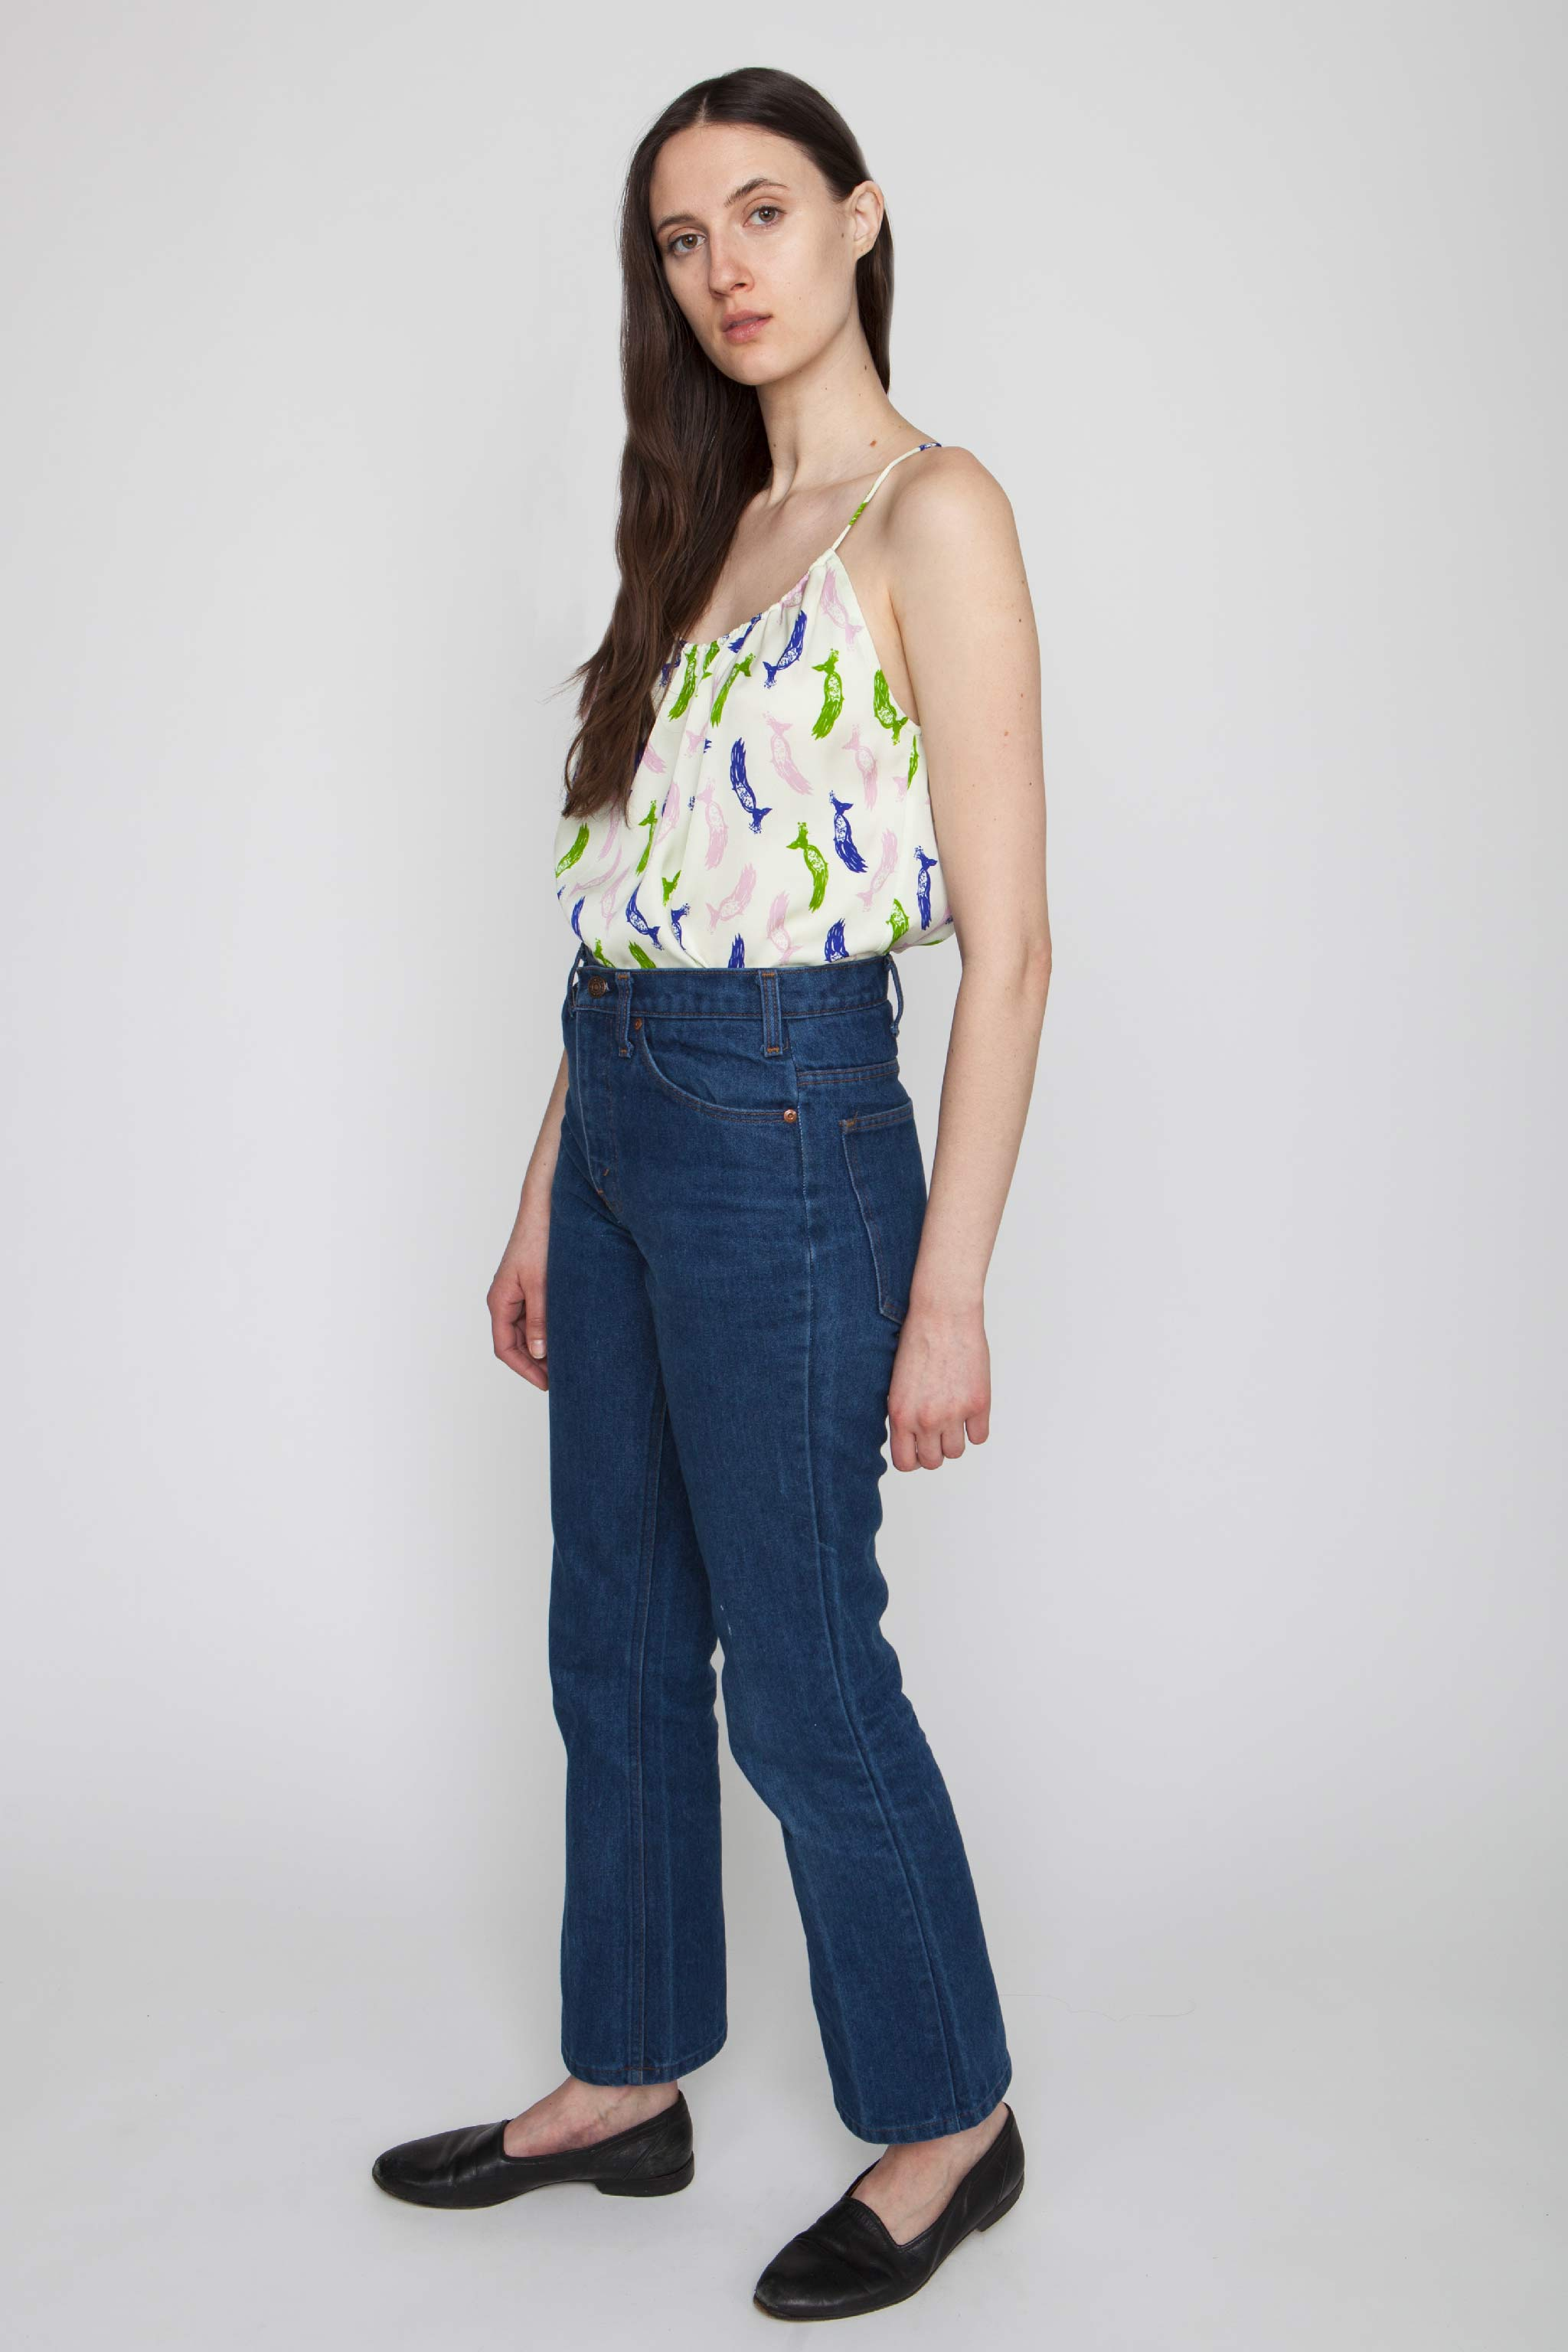 The Camisole | Birds and Fleurs